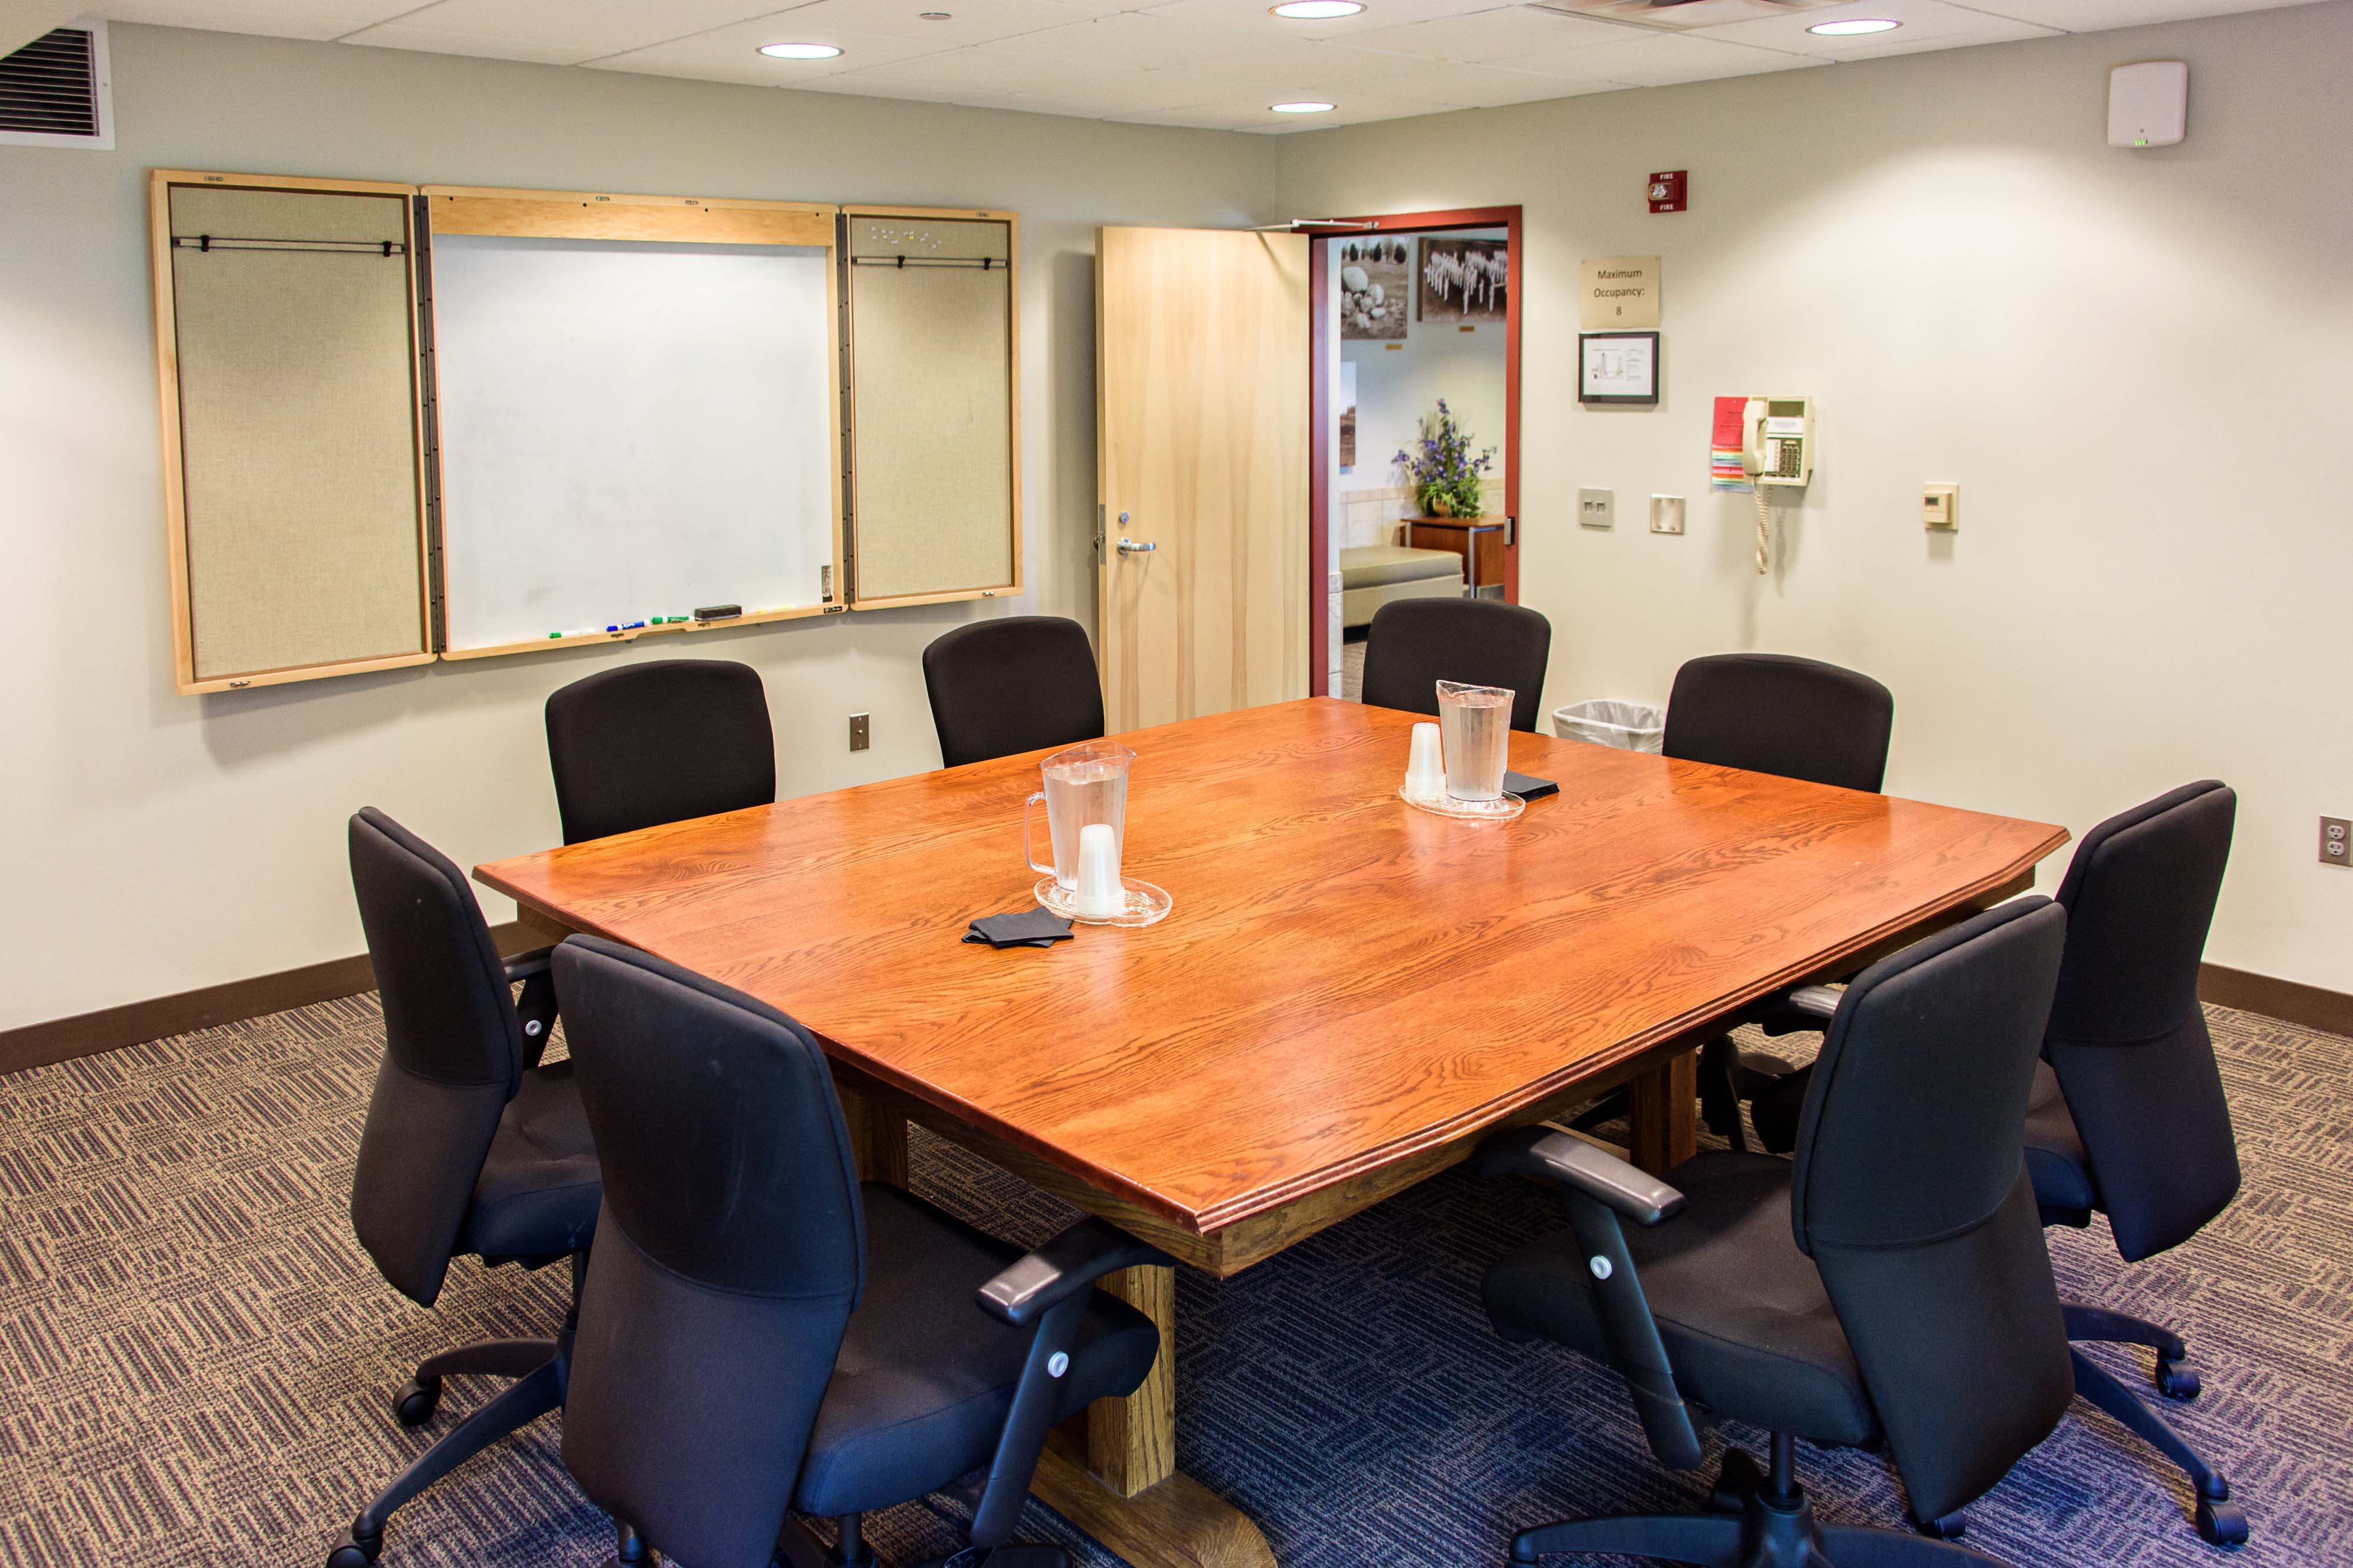 A view of the Bollinger Conference Room that shows its whiteboard, table, and seating